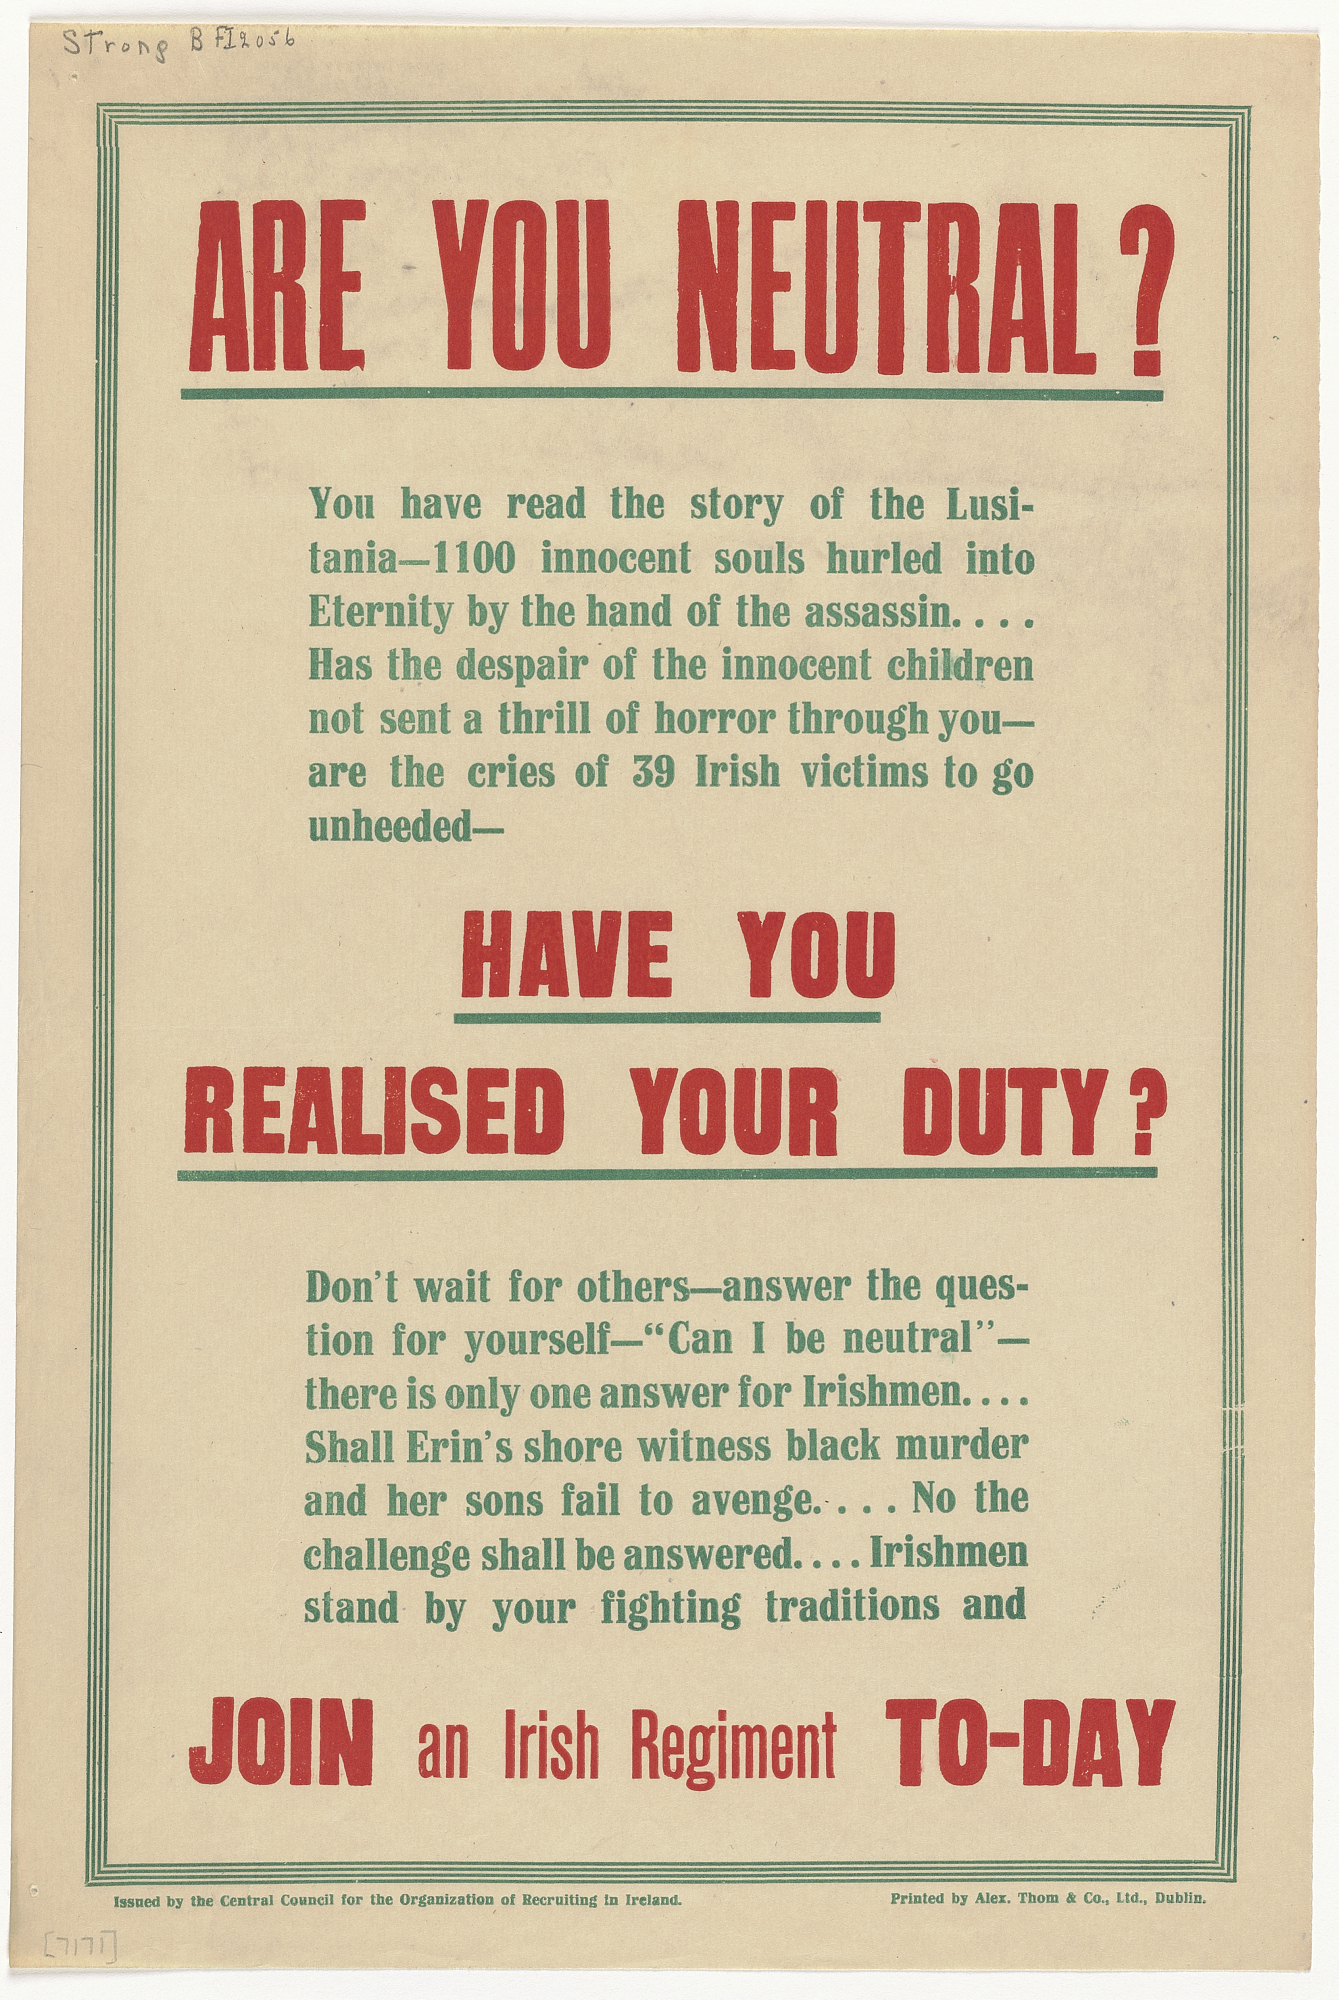 Are You Neutral? You Have Read the Story of the Lusitania ... Have You Realised Your Duty? ... Join an Irish Regiment To-Day